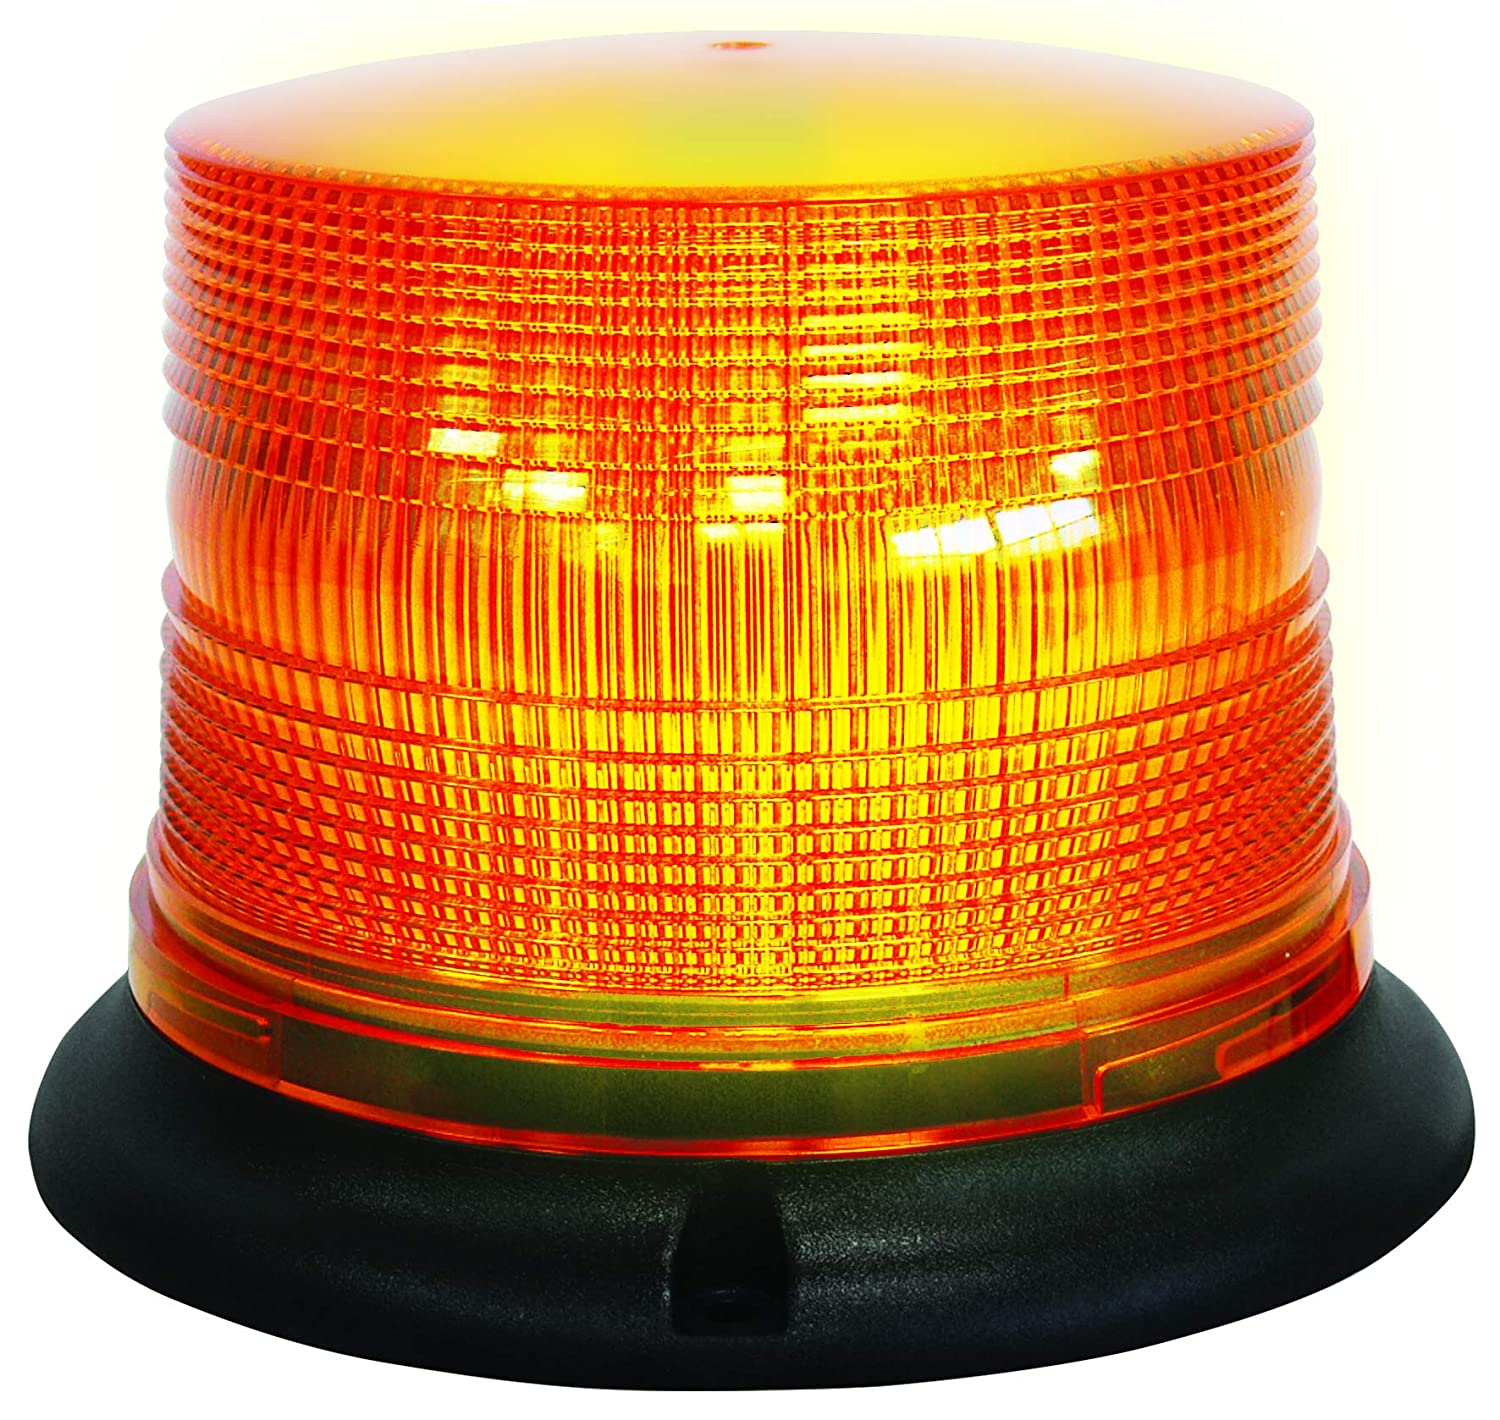 10-30VDC HELLA H27091231 K-LED 500 Twin Magnetic Mount Beacon Warning Light Rotating and Quad Patterns Amber